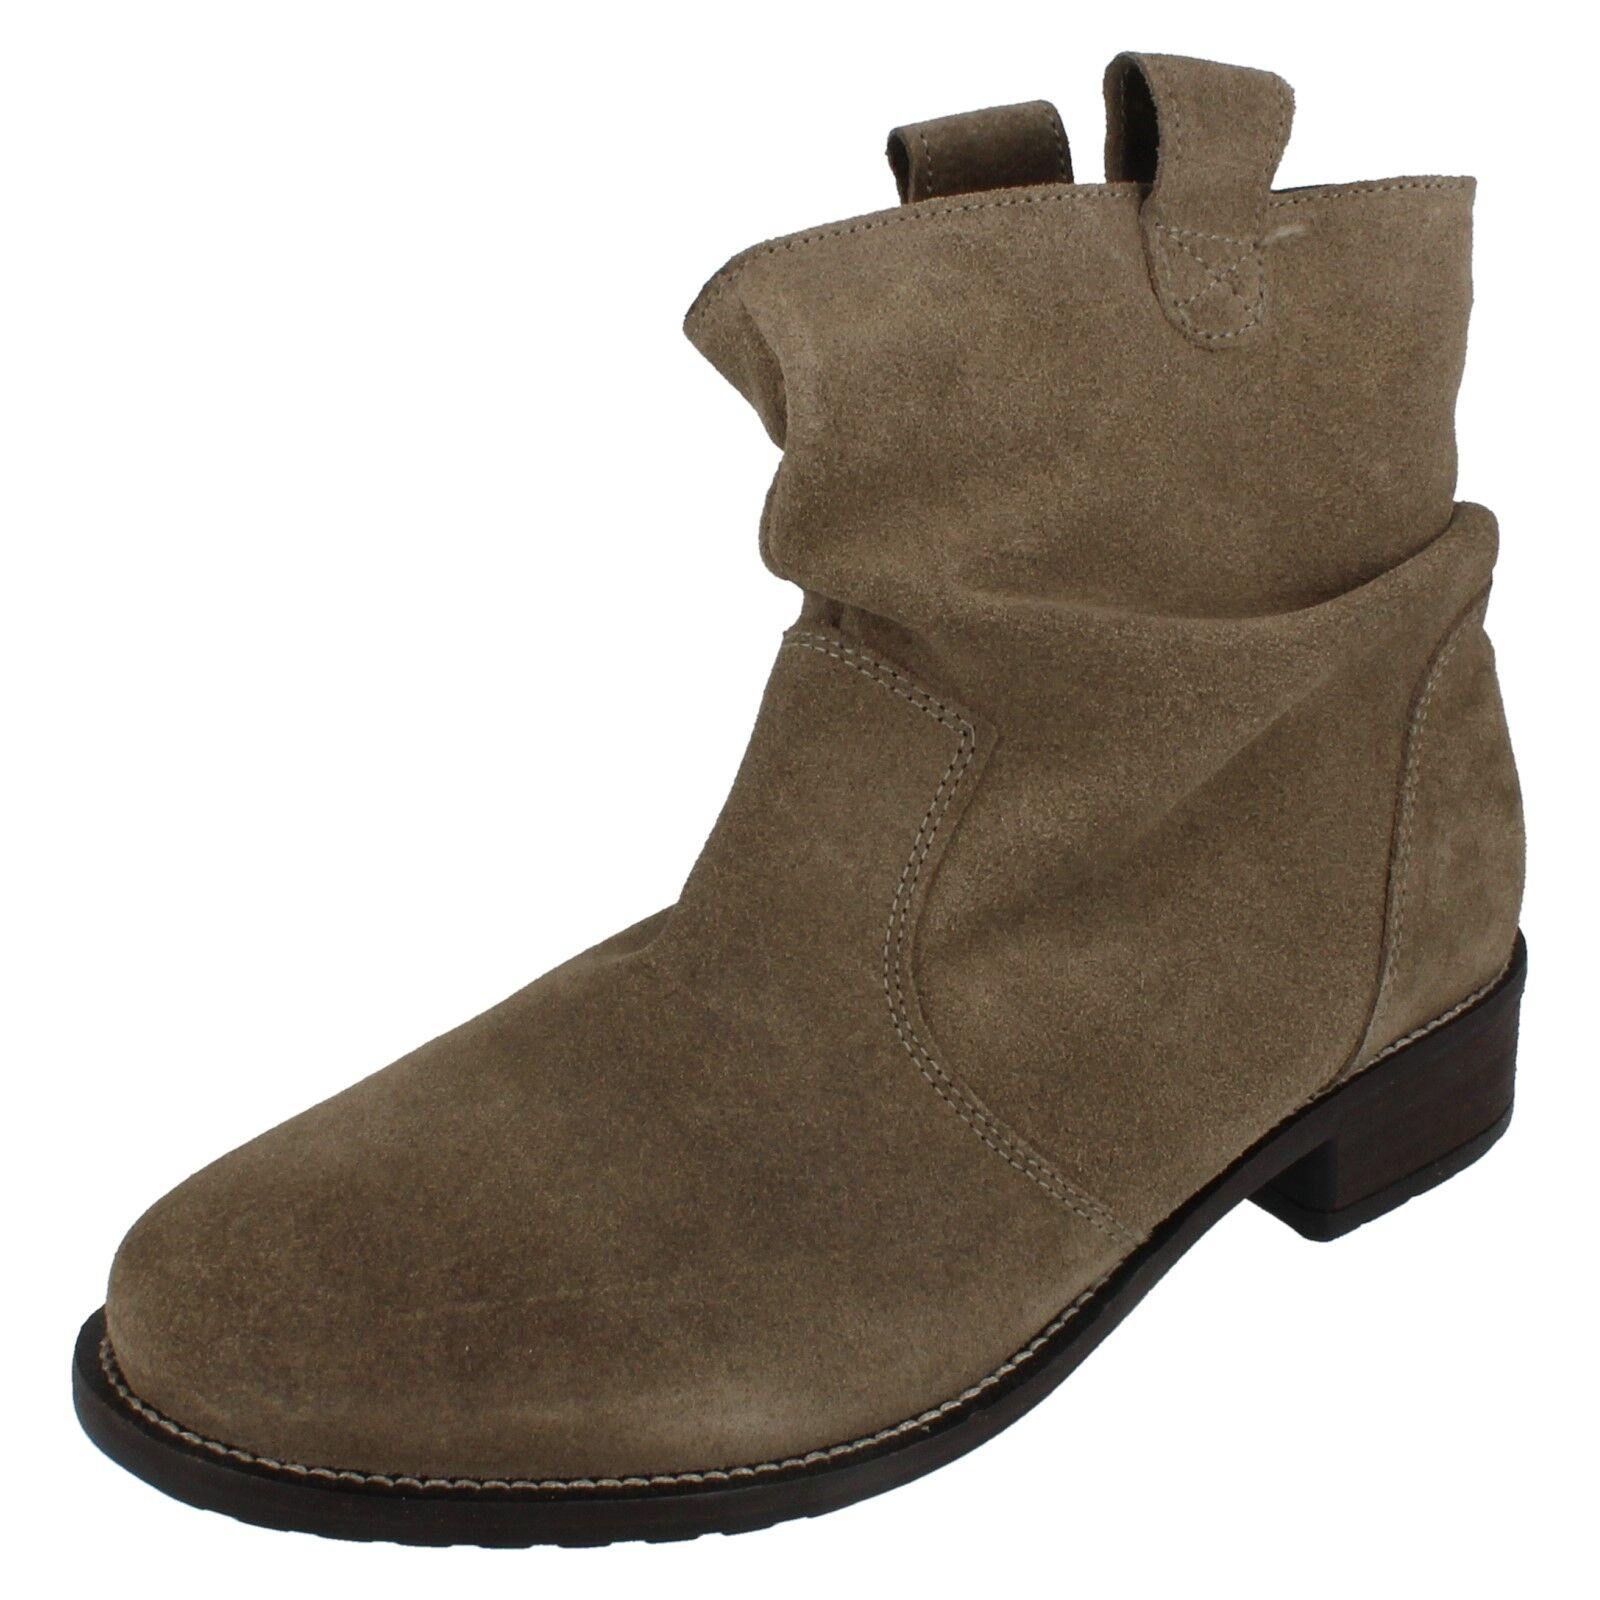 Mesdames cuir collection Slouch Bottines à enfiler F5R0659